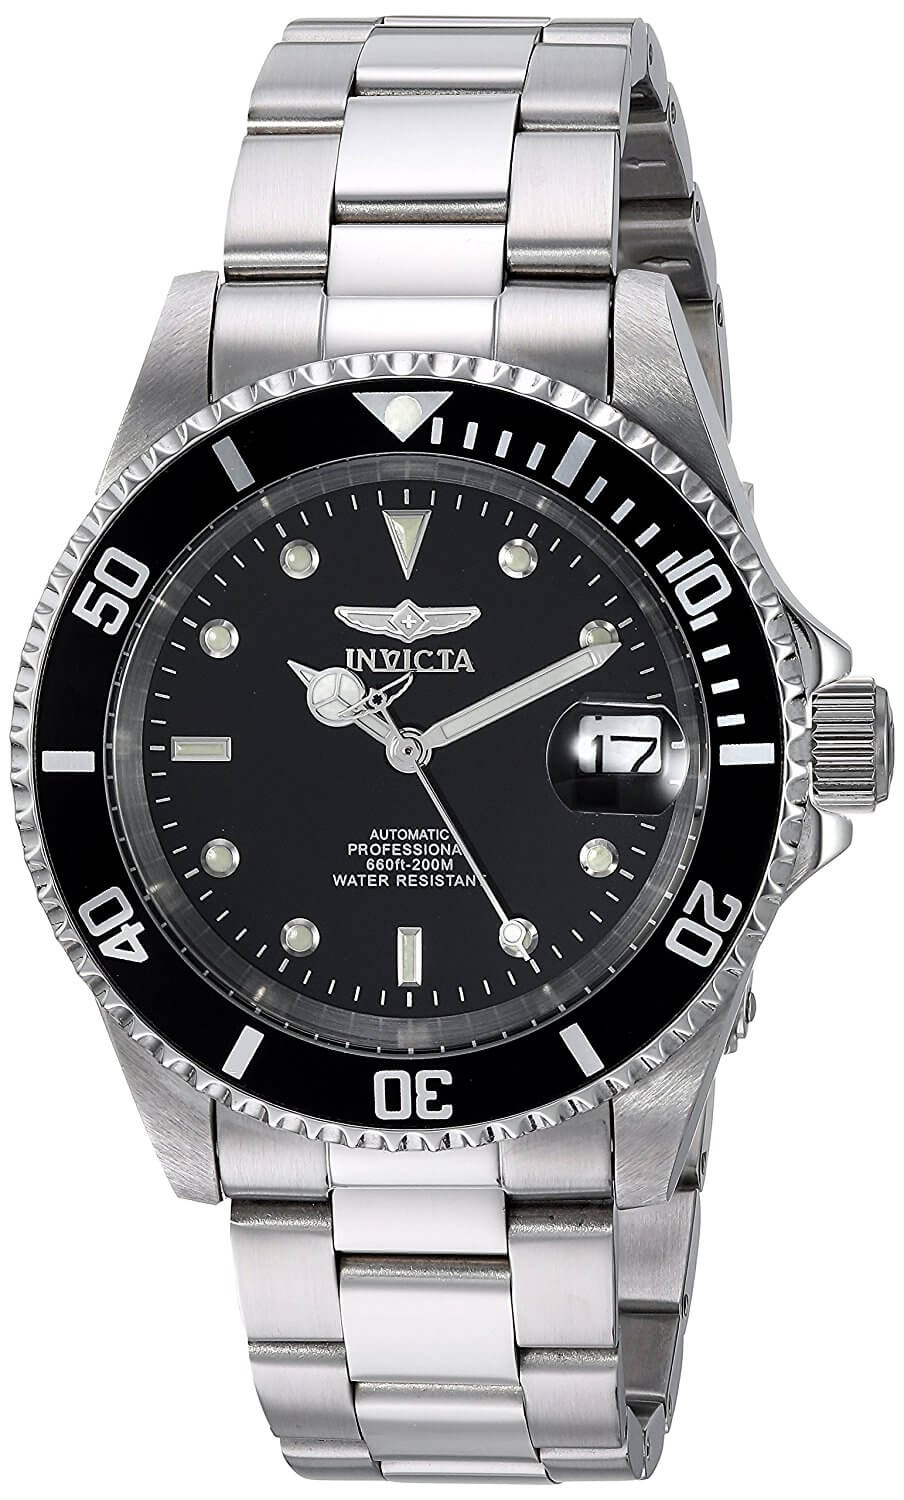 Buy Invicta Men's Pro Diver Collection Automatic Watch, Silver-Tone/Black Dial/Half Open Back and other Wrist Watches at tvjerjuyxbdmp.ga Our wide selection is eligible for free shipping and free returns.